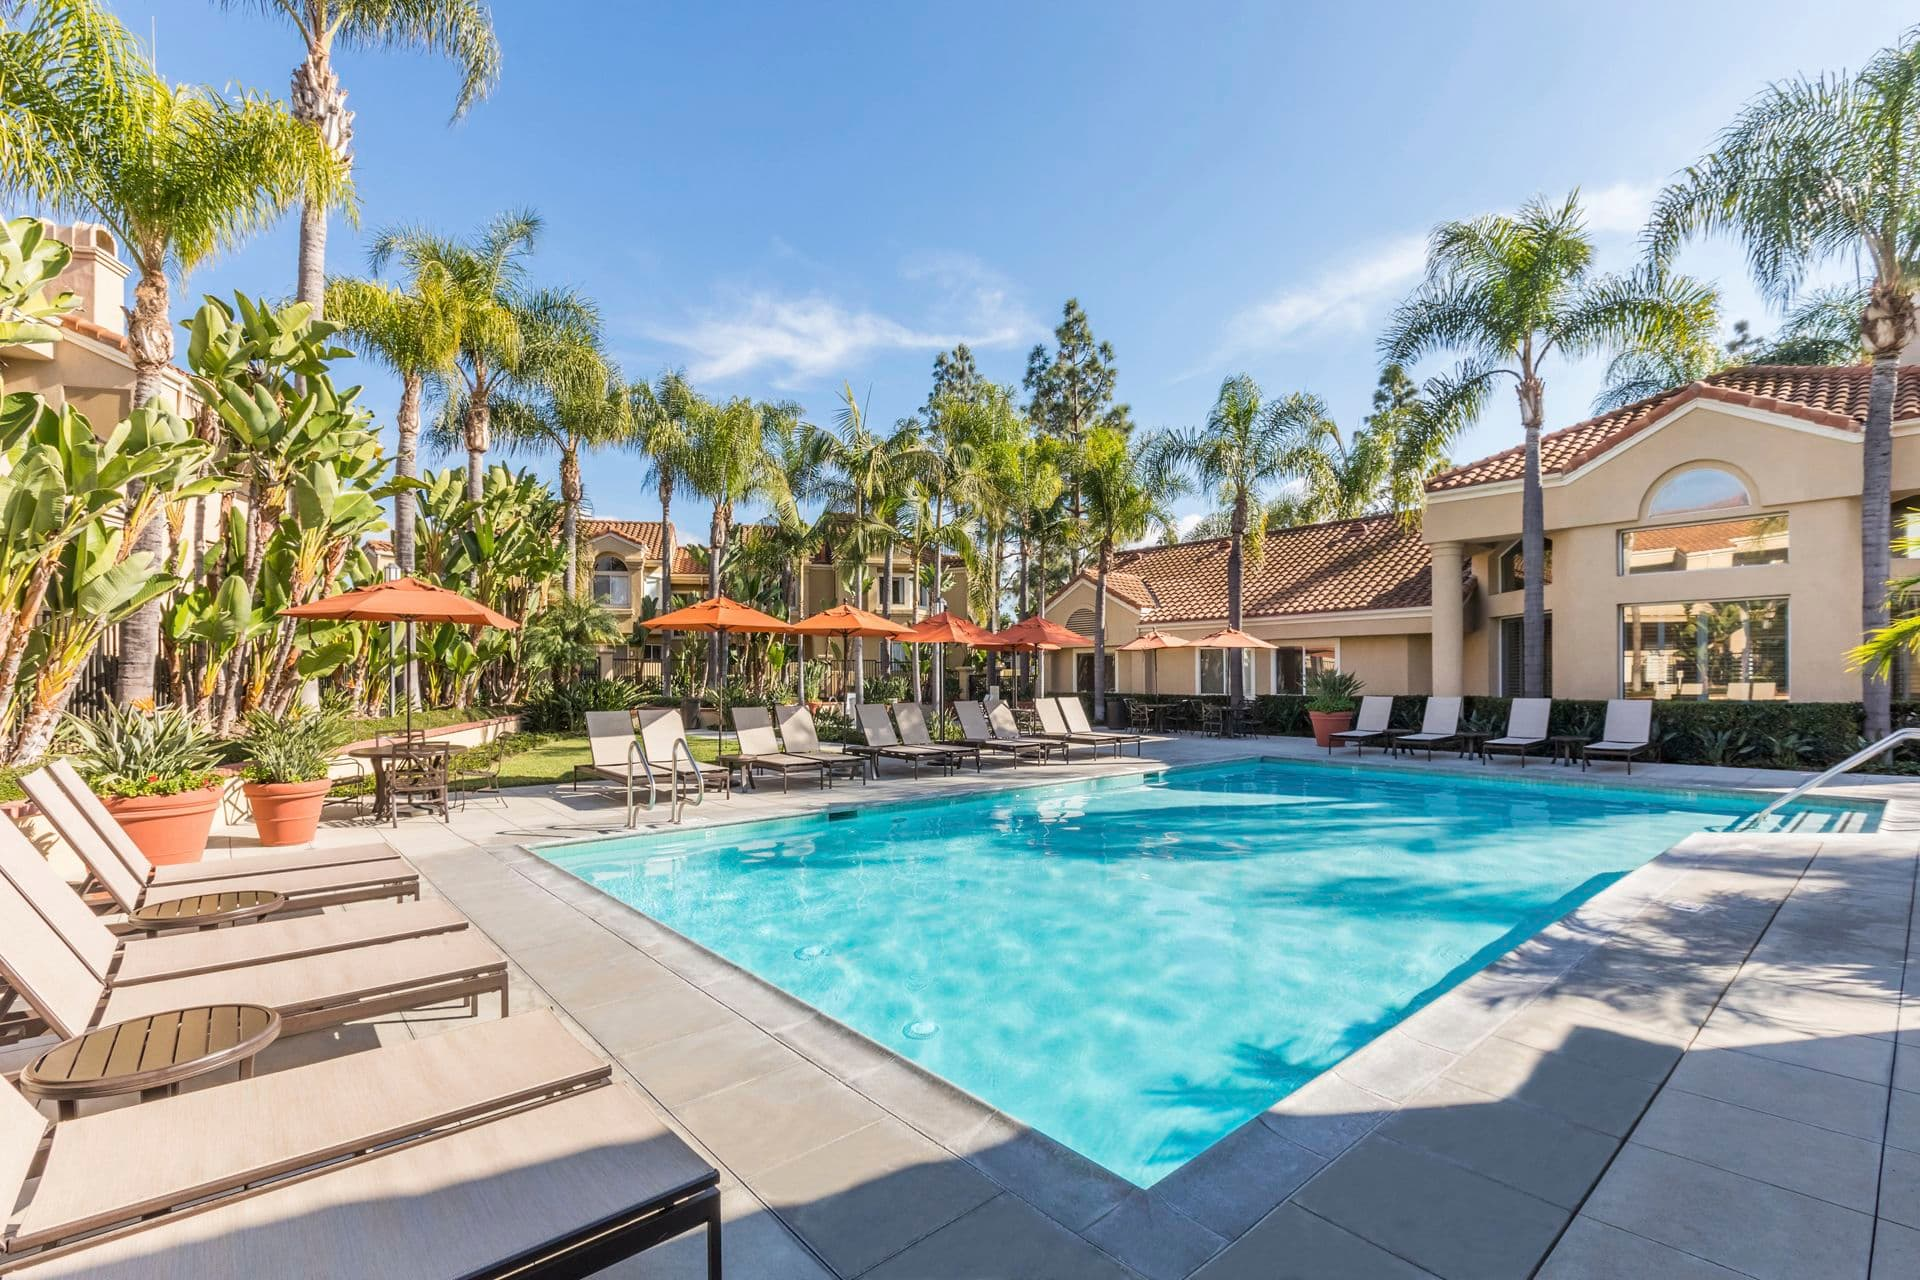 Exterior view of the pool at San Marco Villa Apartment Homes in Irvine, CA.